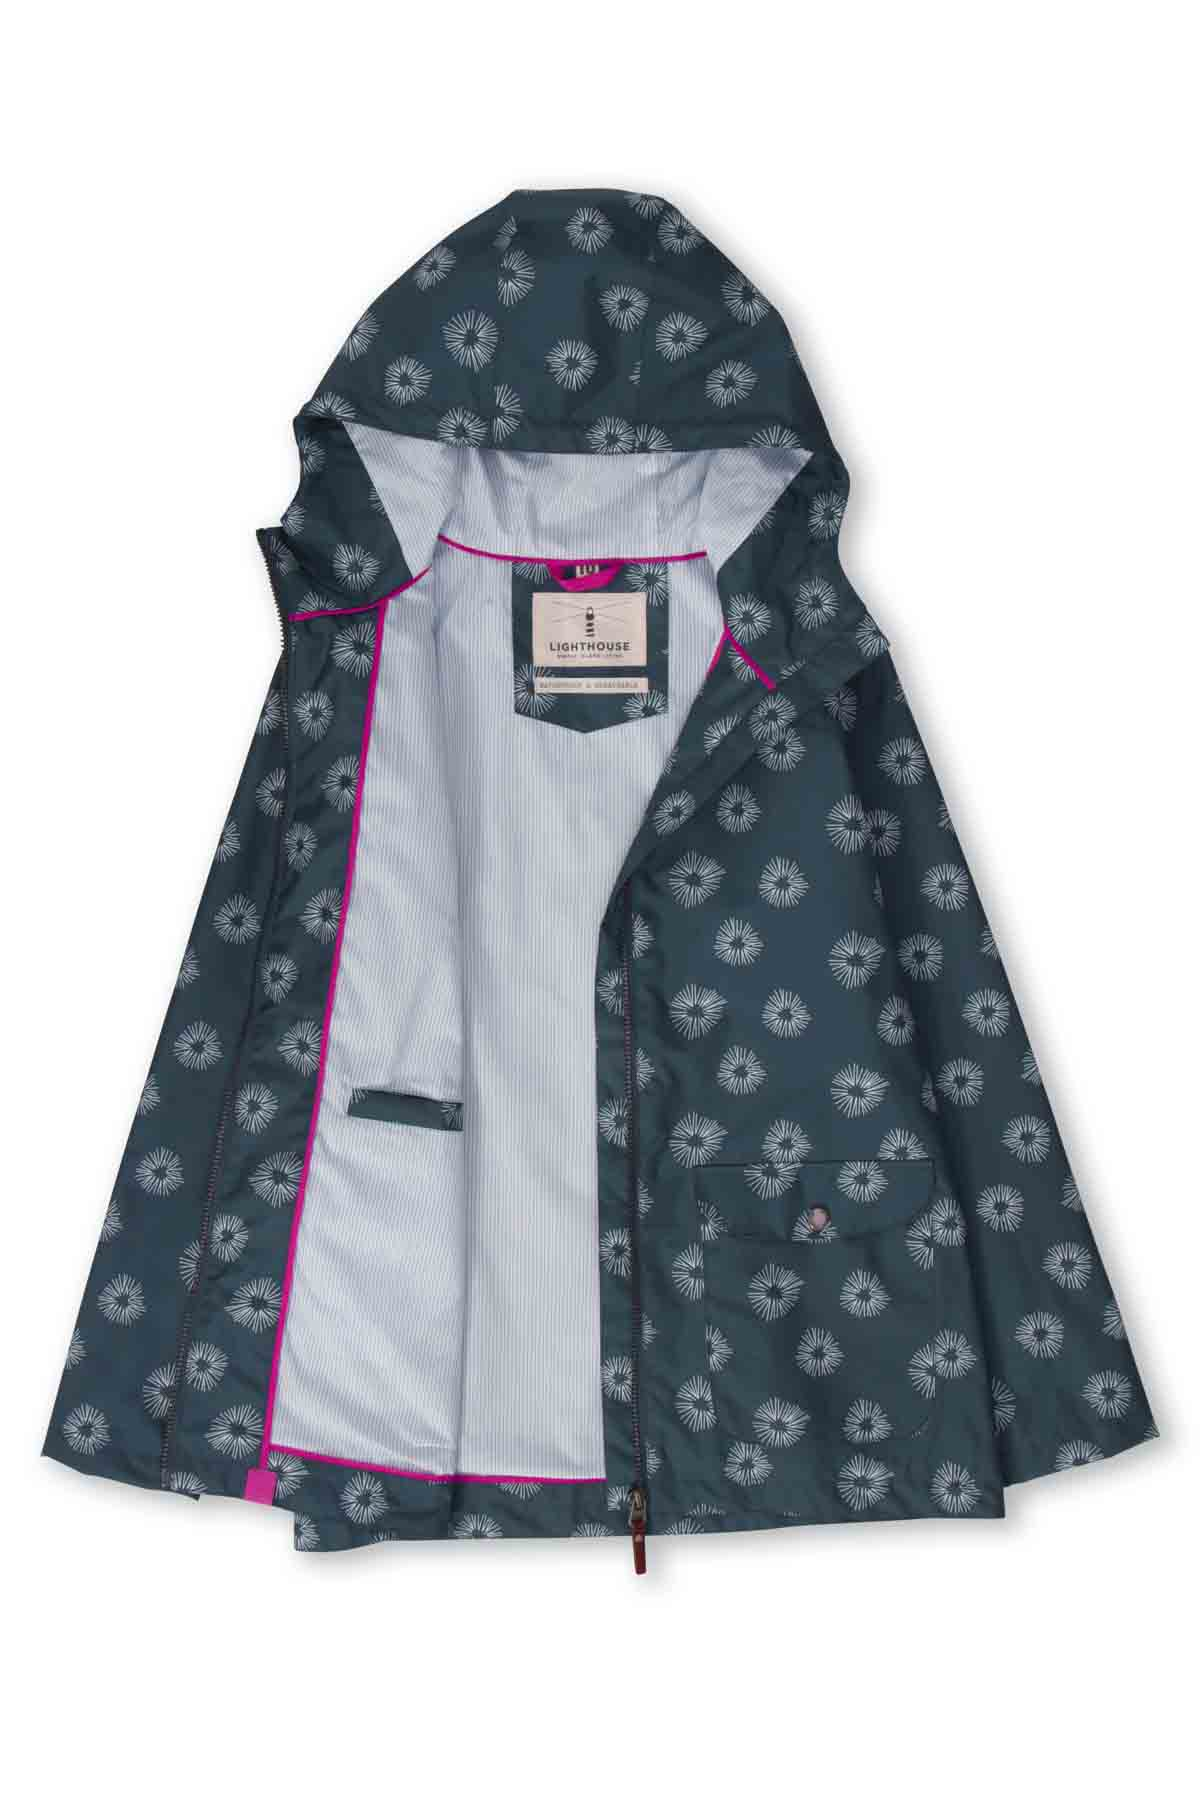 Lighthouse Anya Women's Waterproof Jacket - Midnight Print